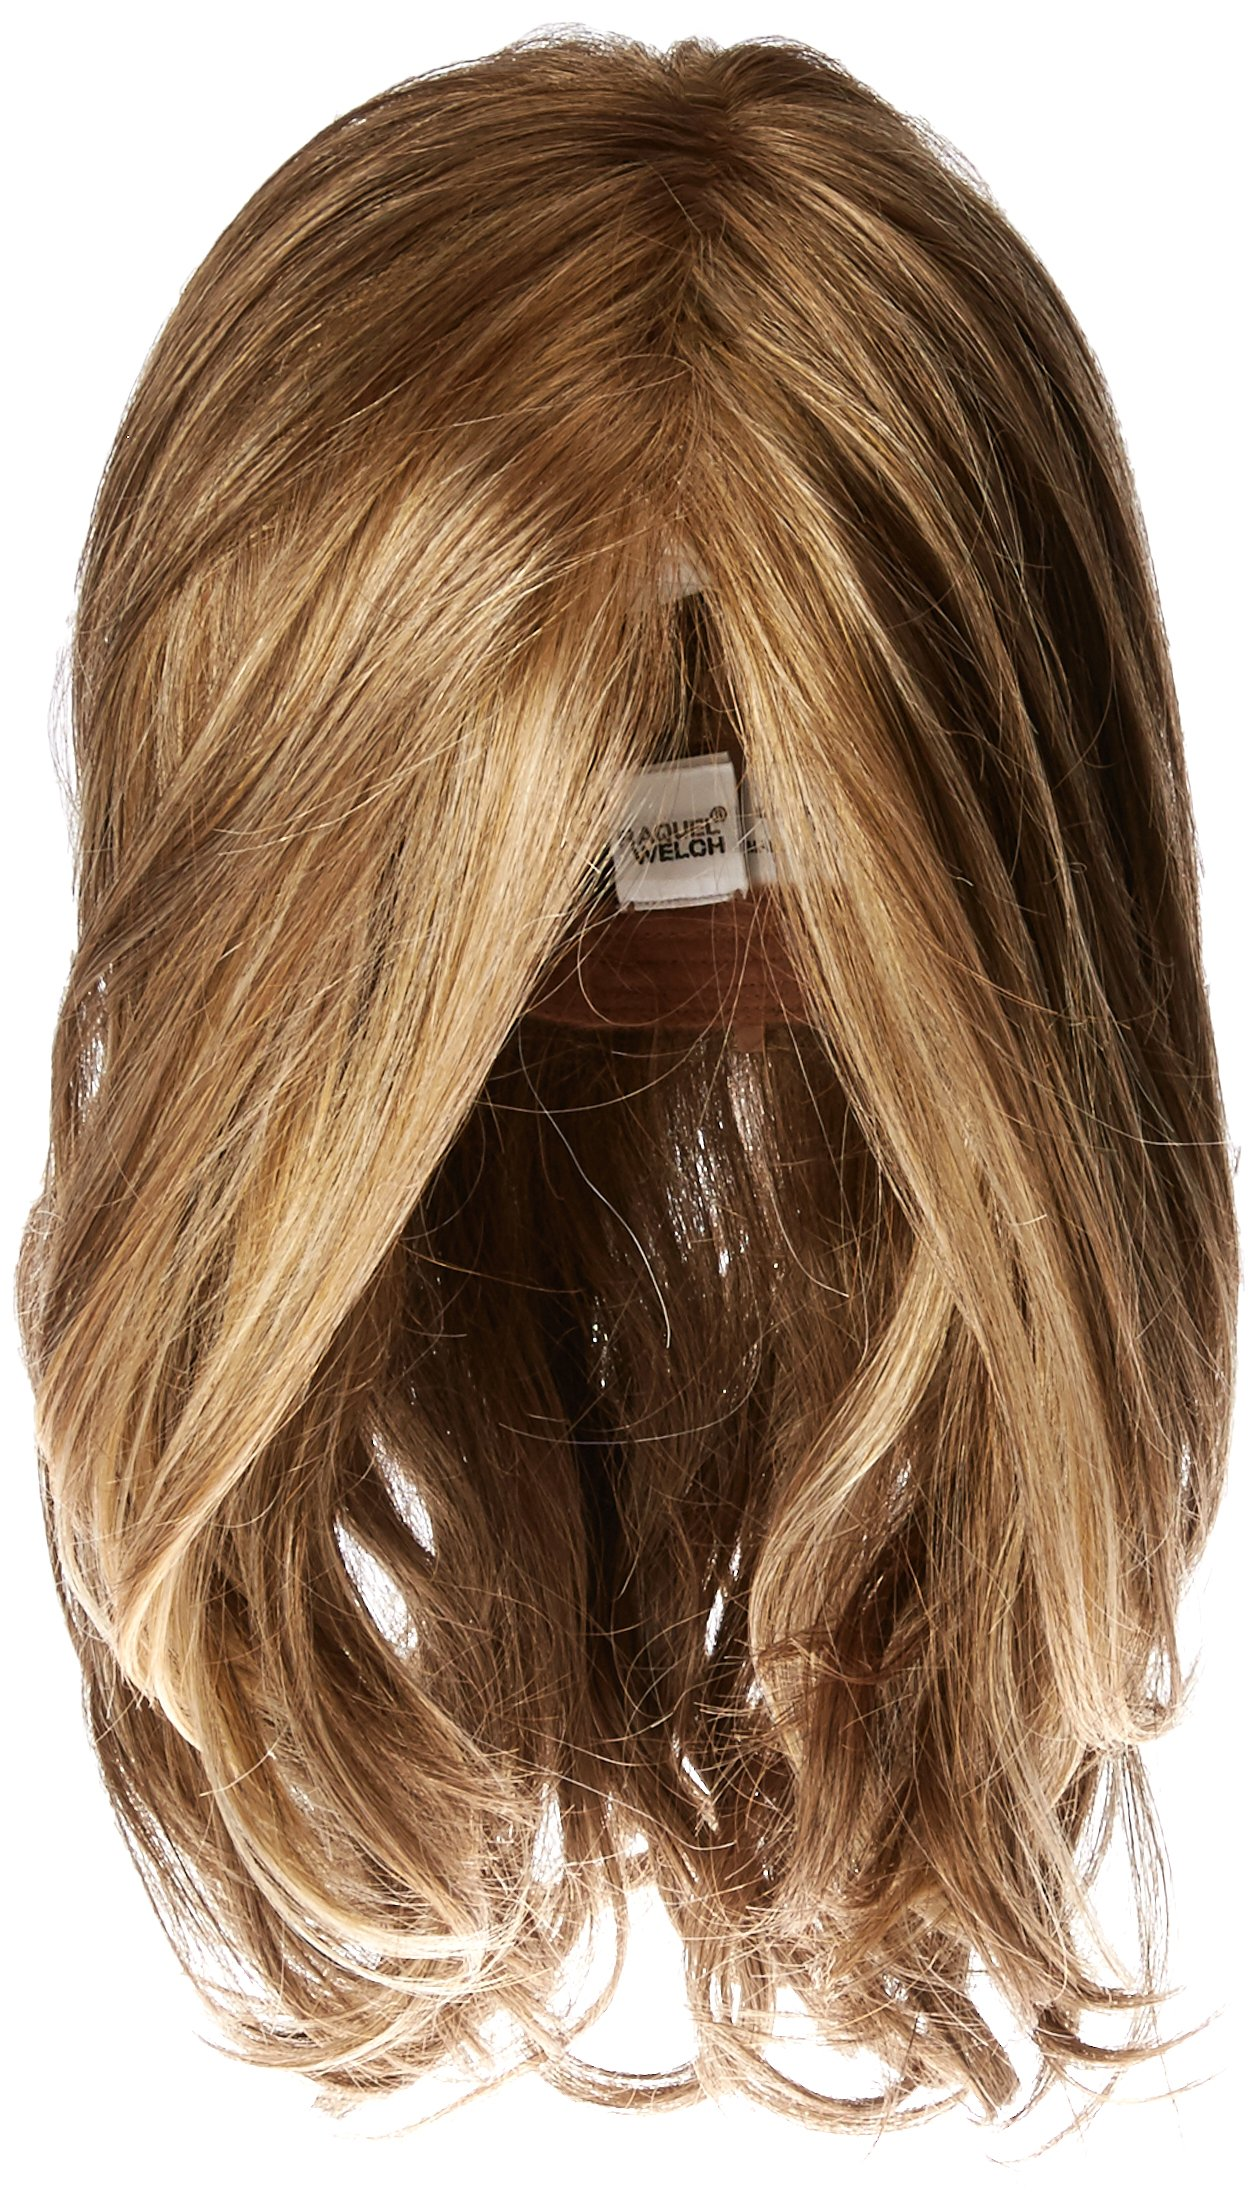 Hairdo Love Love Love Long Full Length Straight Hair With Soft Natural Wave Highlights, R13F25 Praline Foil by Hairuwear by Hair u wear